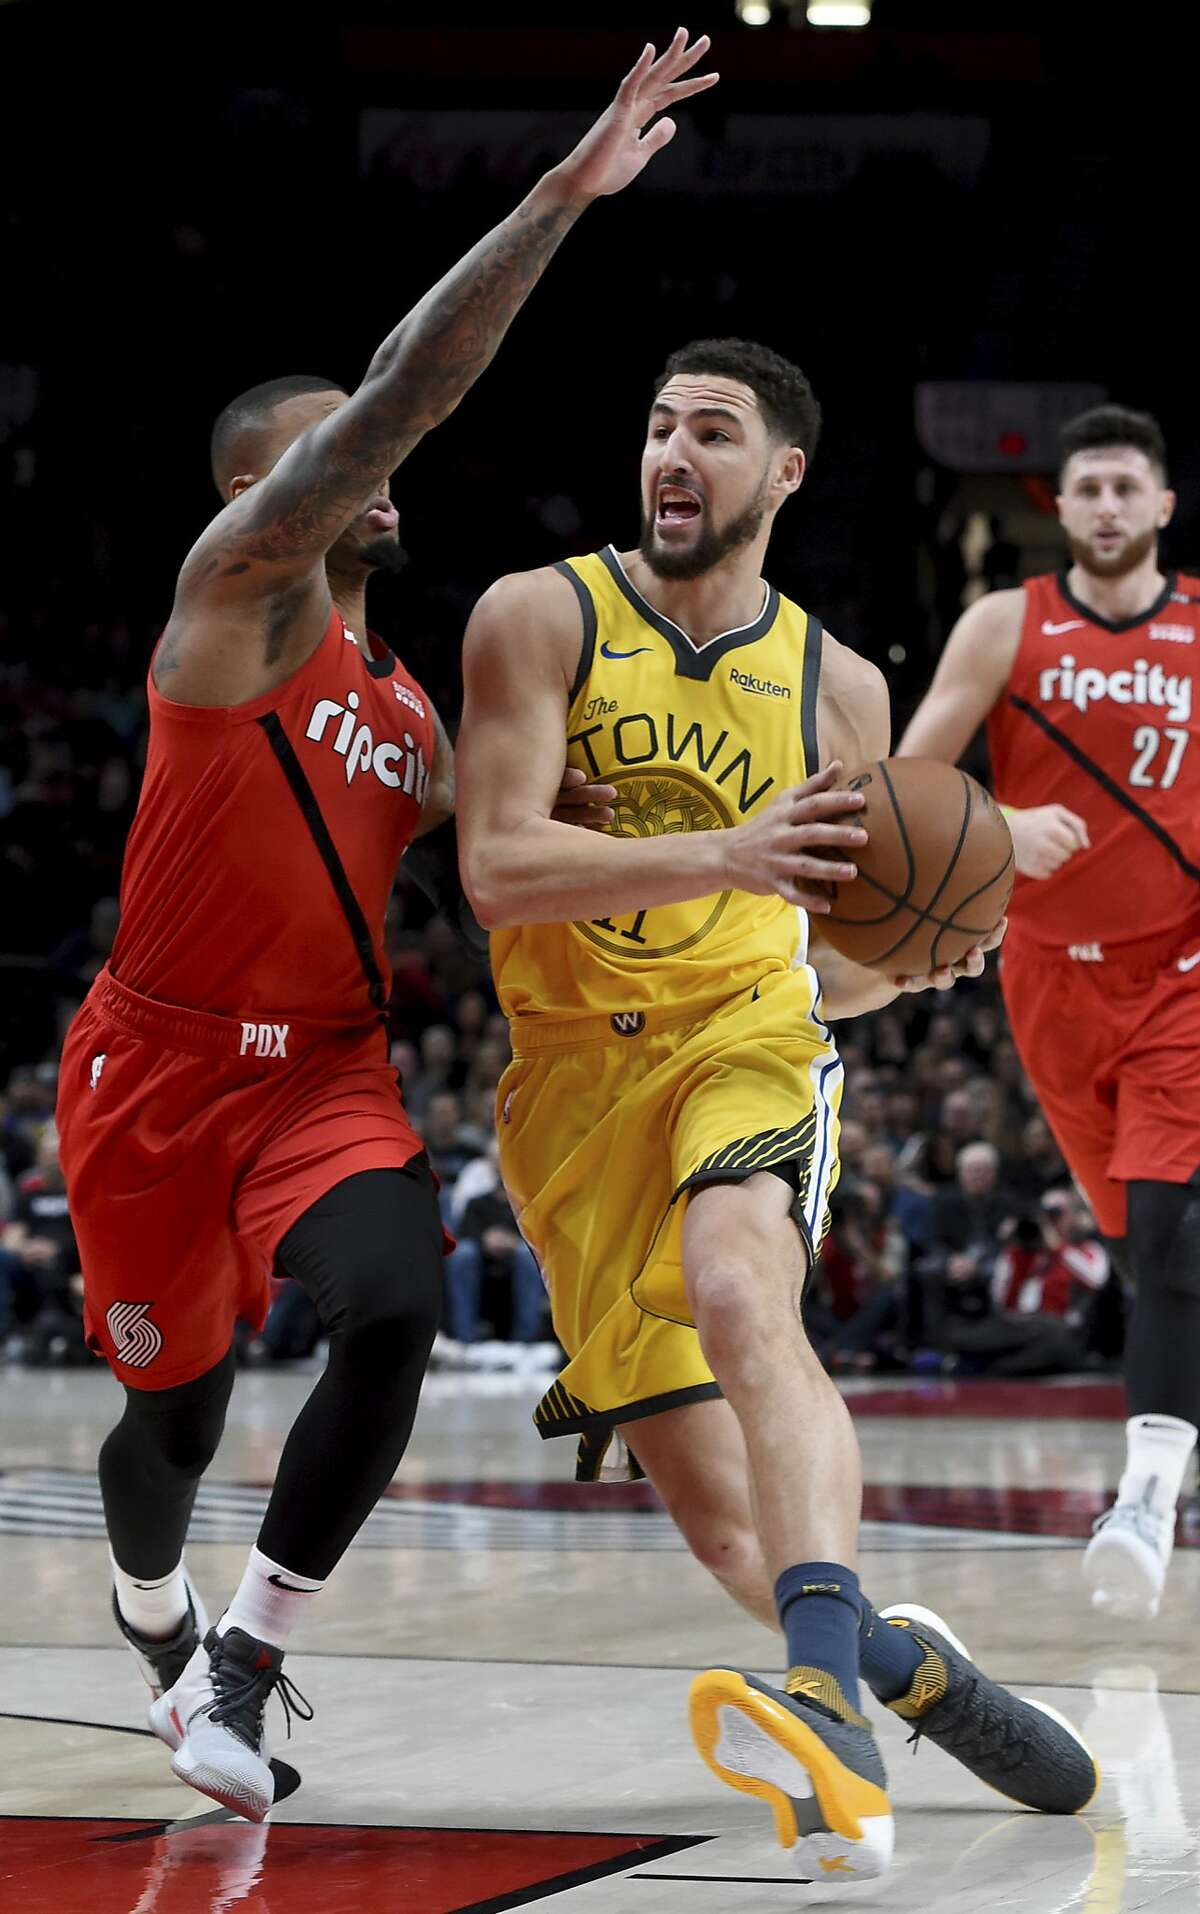 Golden State Warriors guard Klay Thompson, right, drives to the basket on Portland Trail Blazers guard Damian Lillard, left, during the first half of an NBA basketball game in Portland, Ore., Saturday, Dec. 29, 2018. (AP Photo/Steve Dykes)